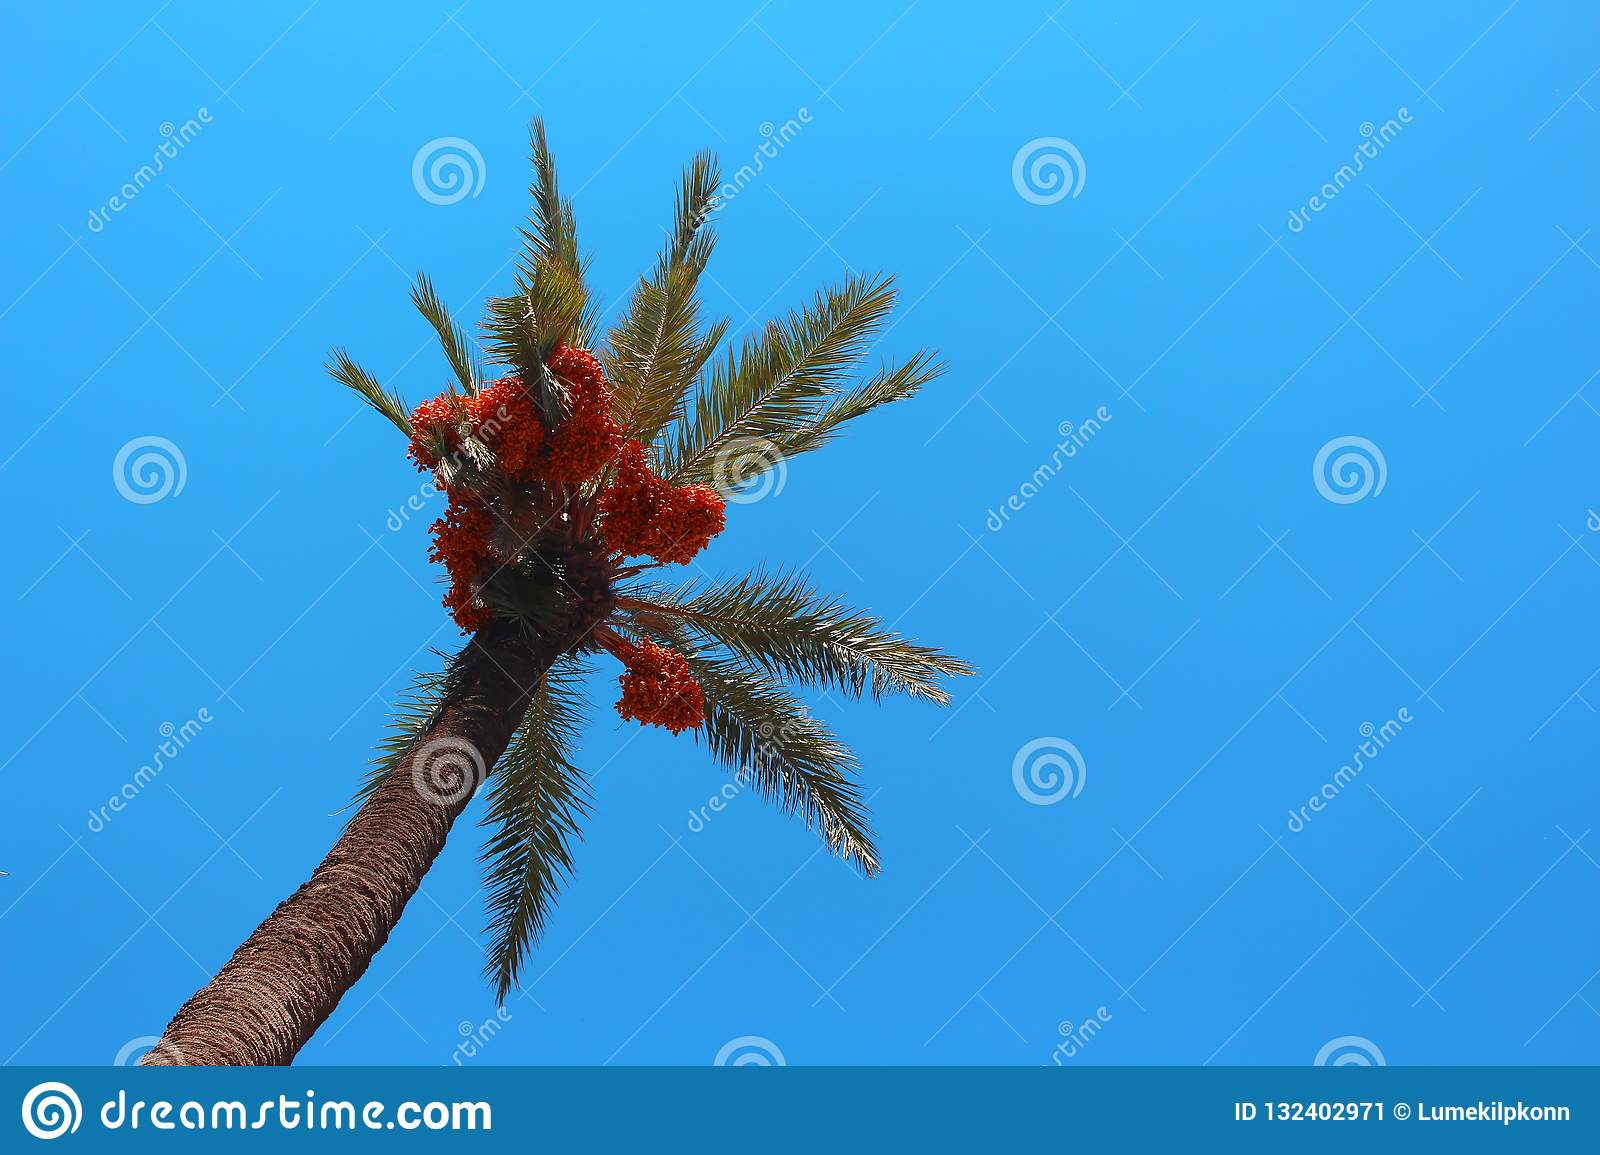 Palm Tree with Orange Berries and Calm Blue Sky